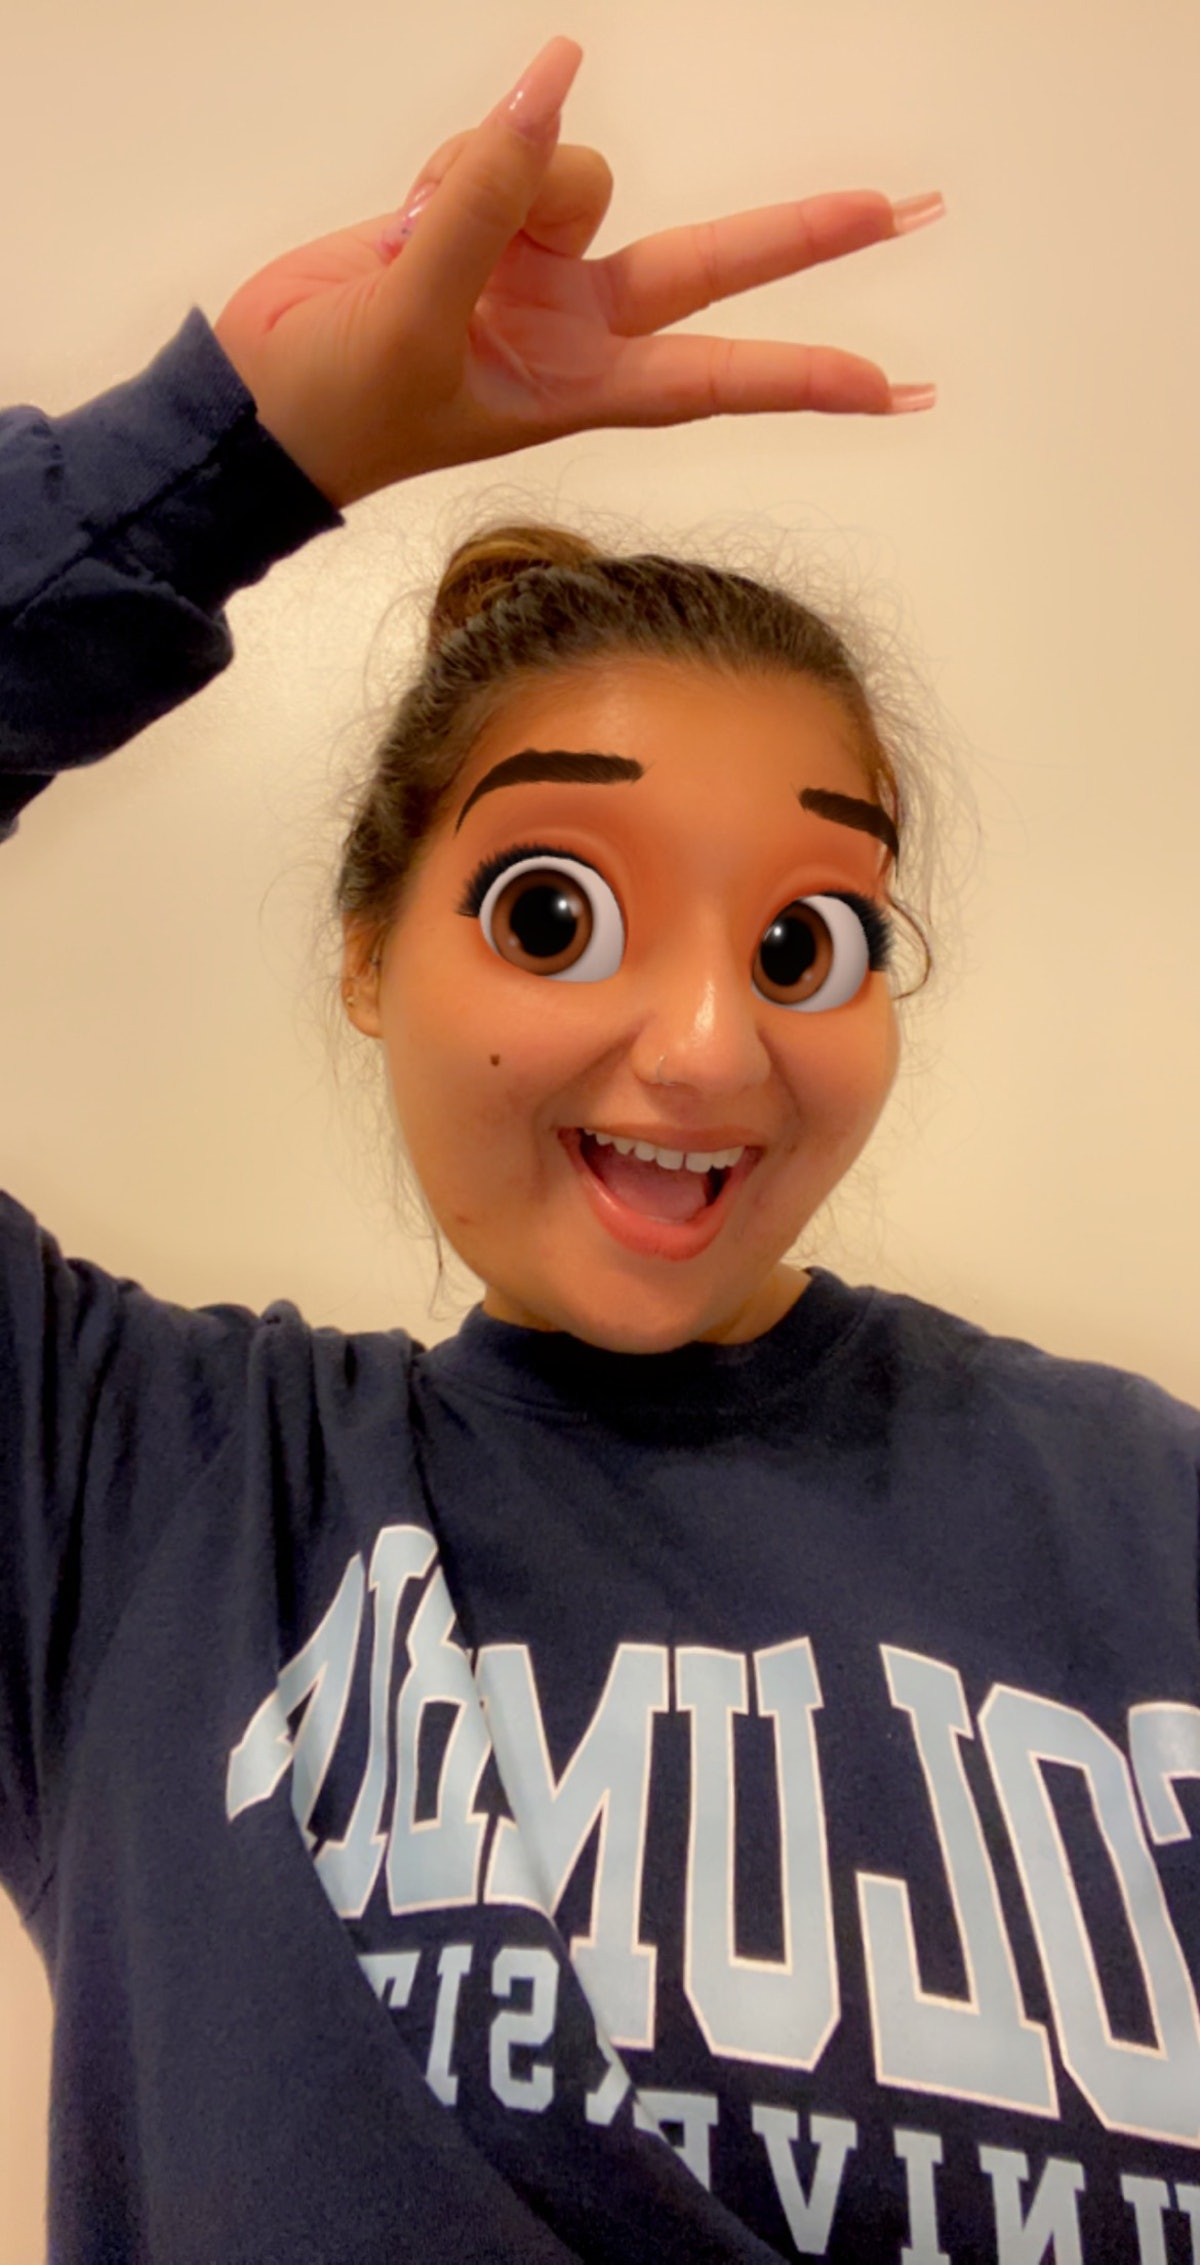 Cartoon Face by Snapchat uses AR effects to cover your eyes with animated ones that look like a Disney character.